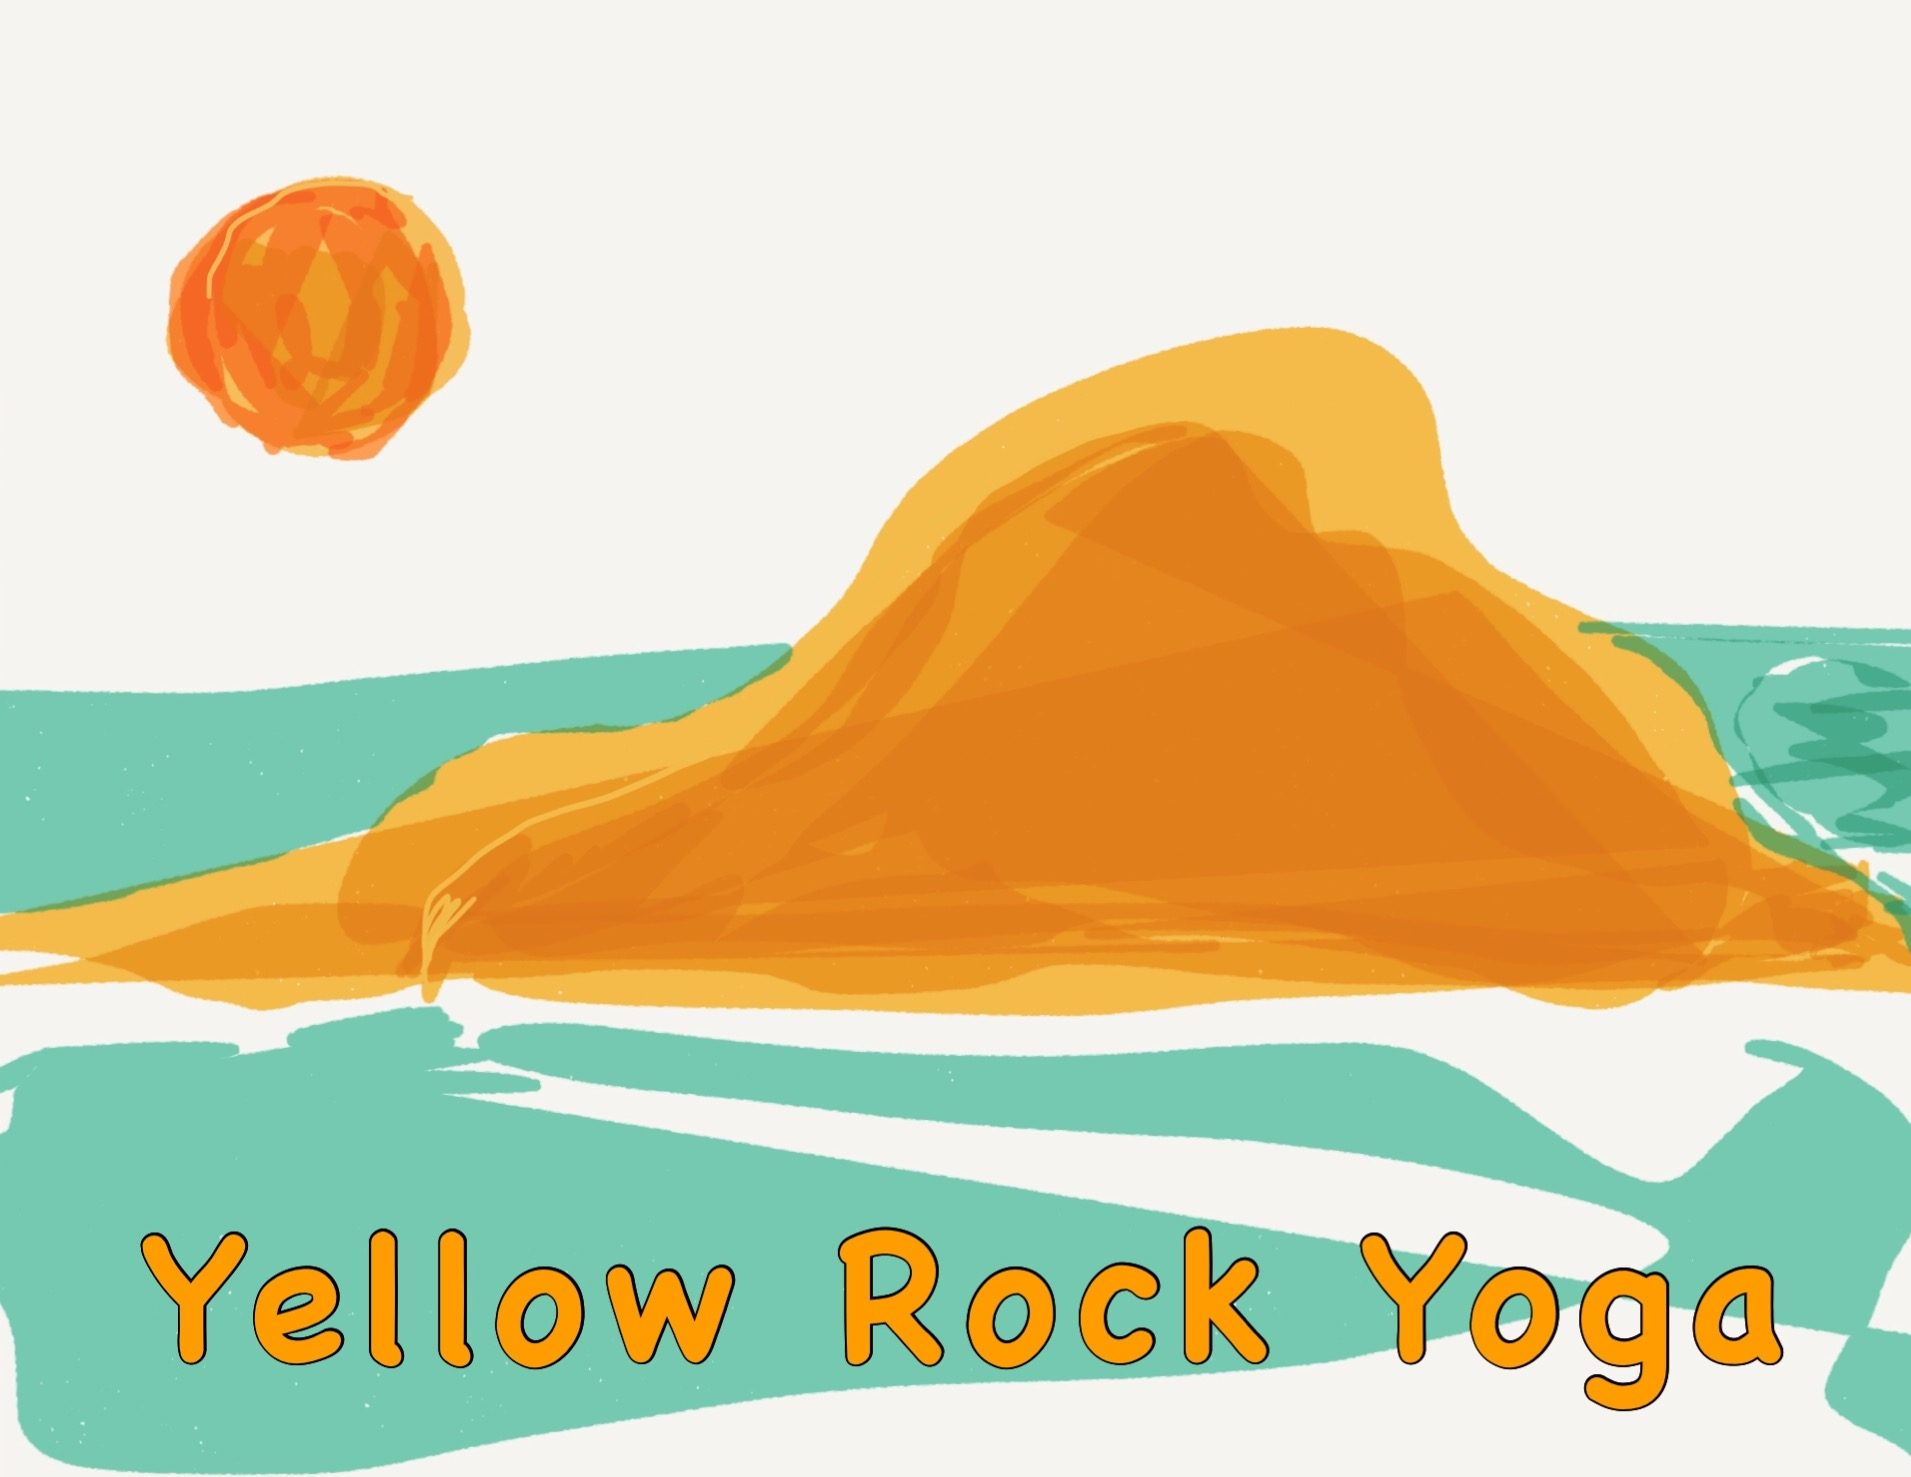 Yellow Rock Yoga